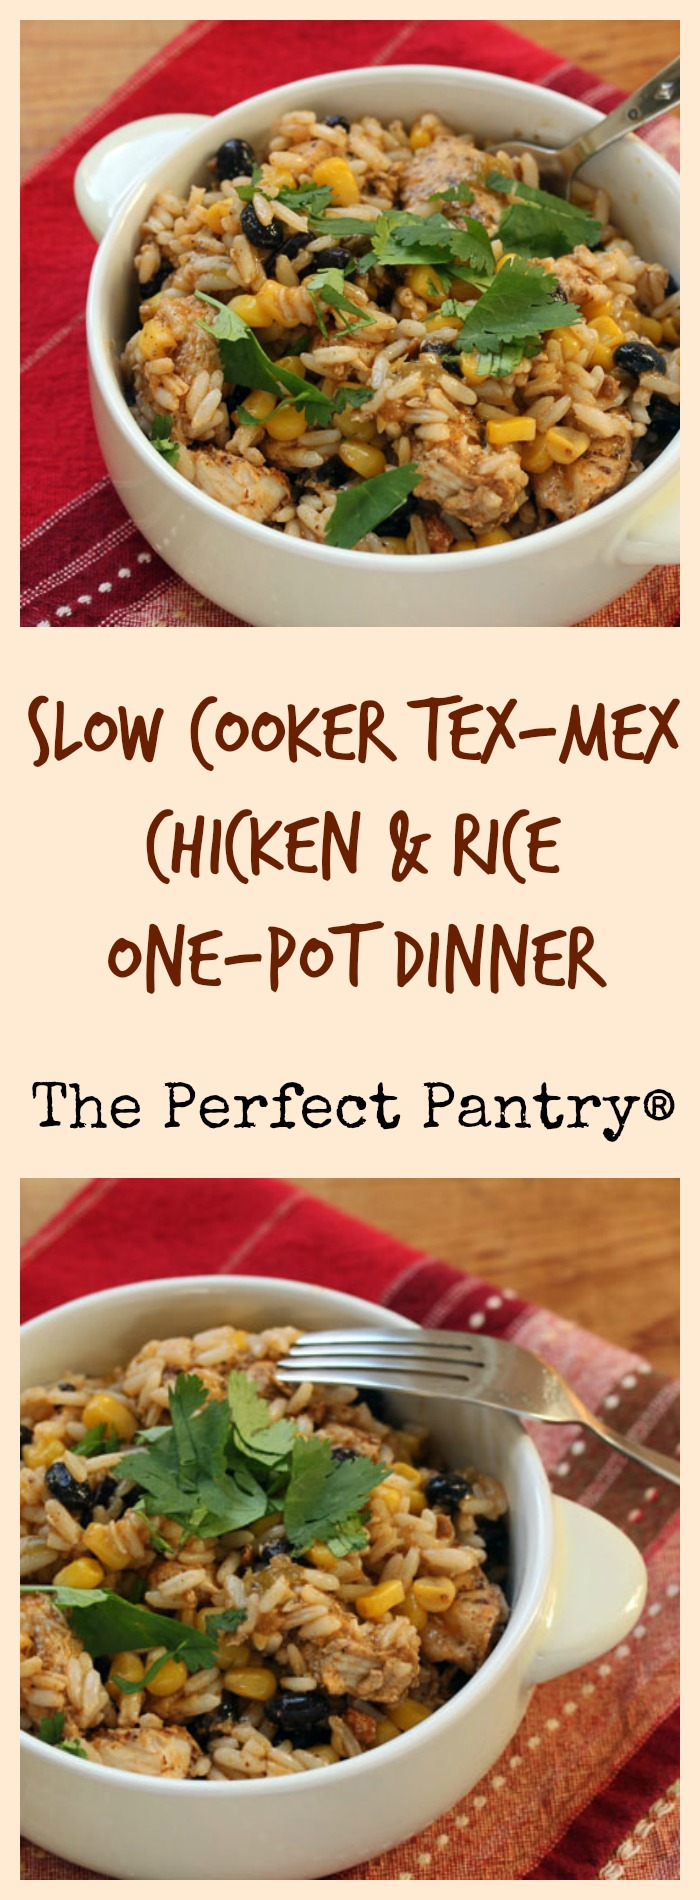 An easy one-pot dinner from your crockpot: Tex-Mex chicken and rice with corn and black beans.